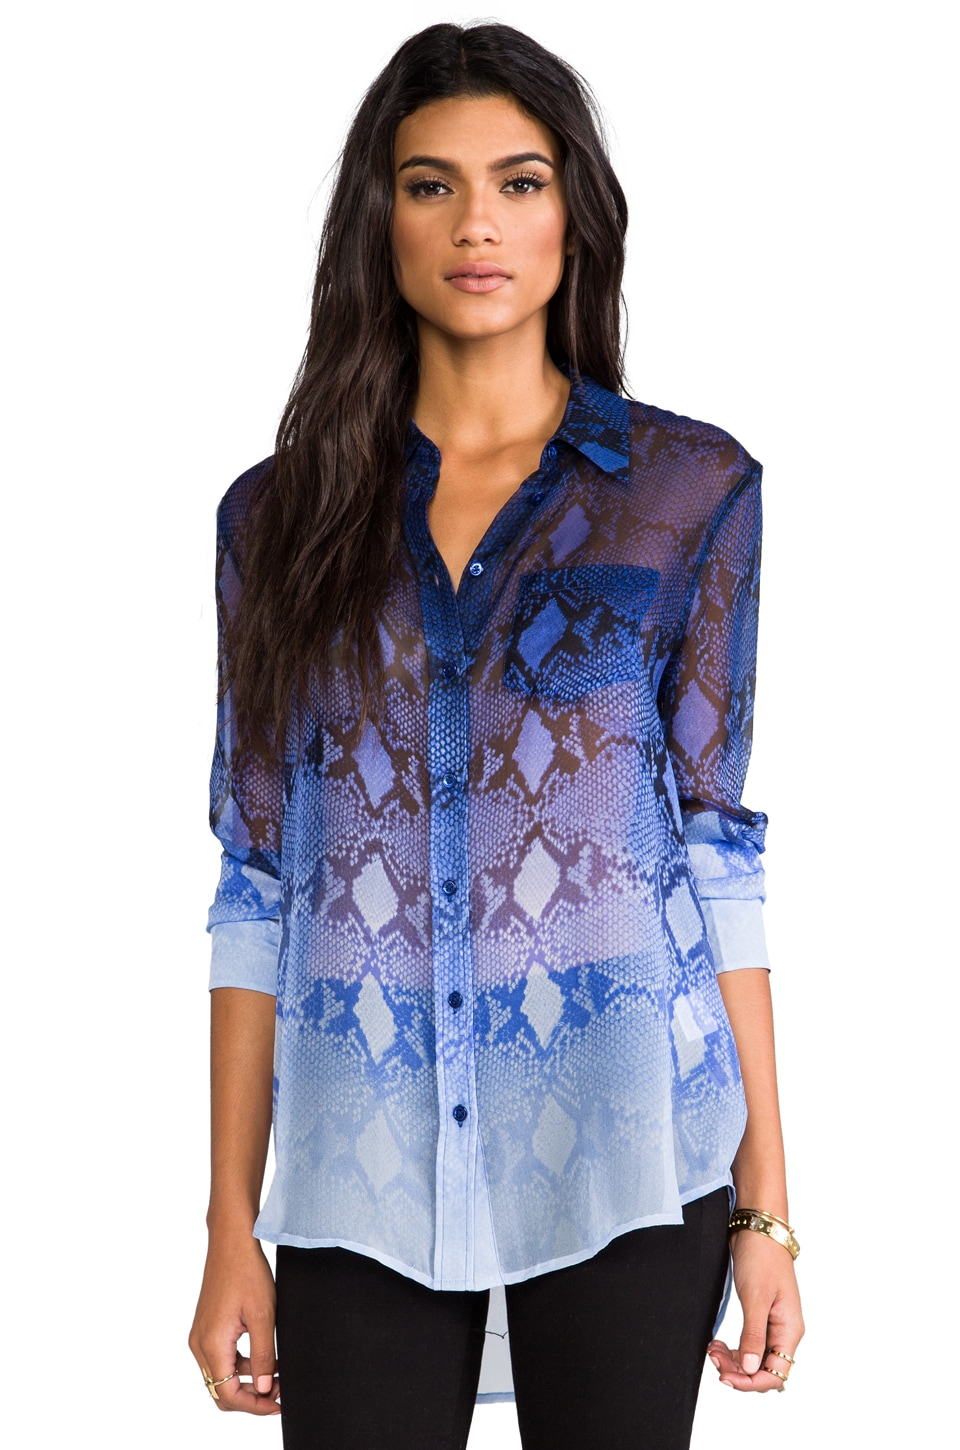 Equipment Reese Fading Blouse in Mazarine Blue